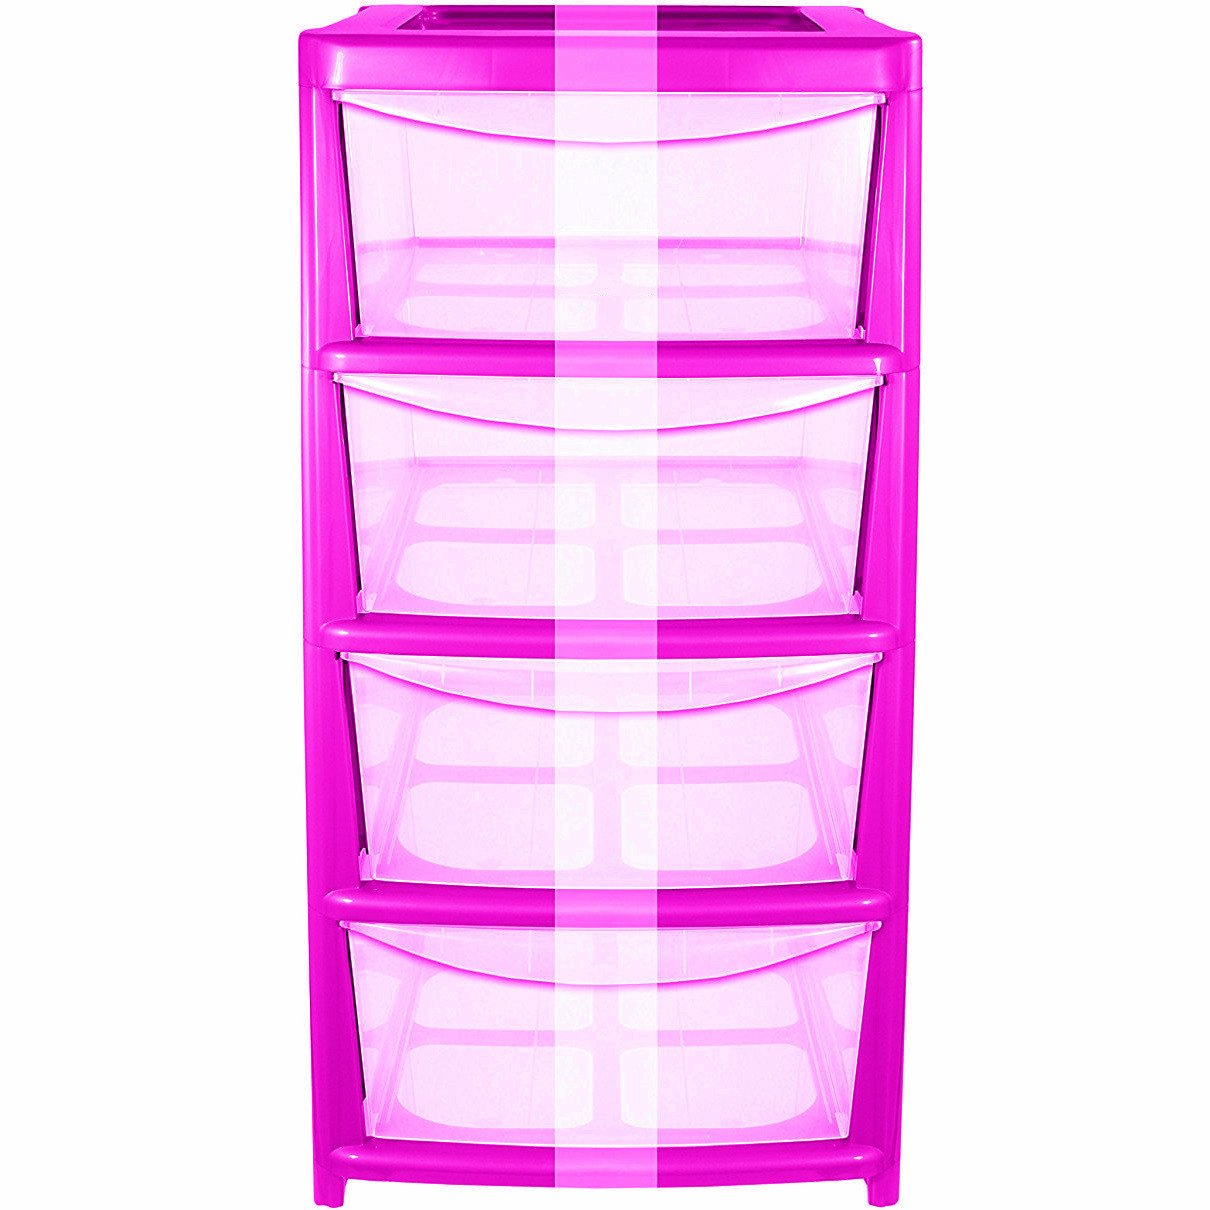 CrazyGadget 4 Drawer Pink Medium Tower Storage Draw Plastic School Office Home Heavy Duty New